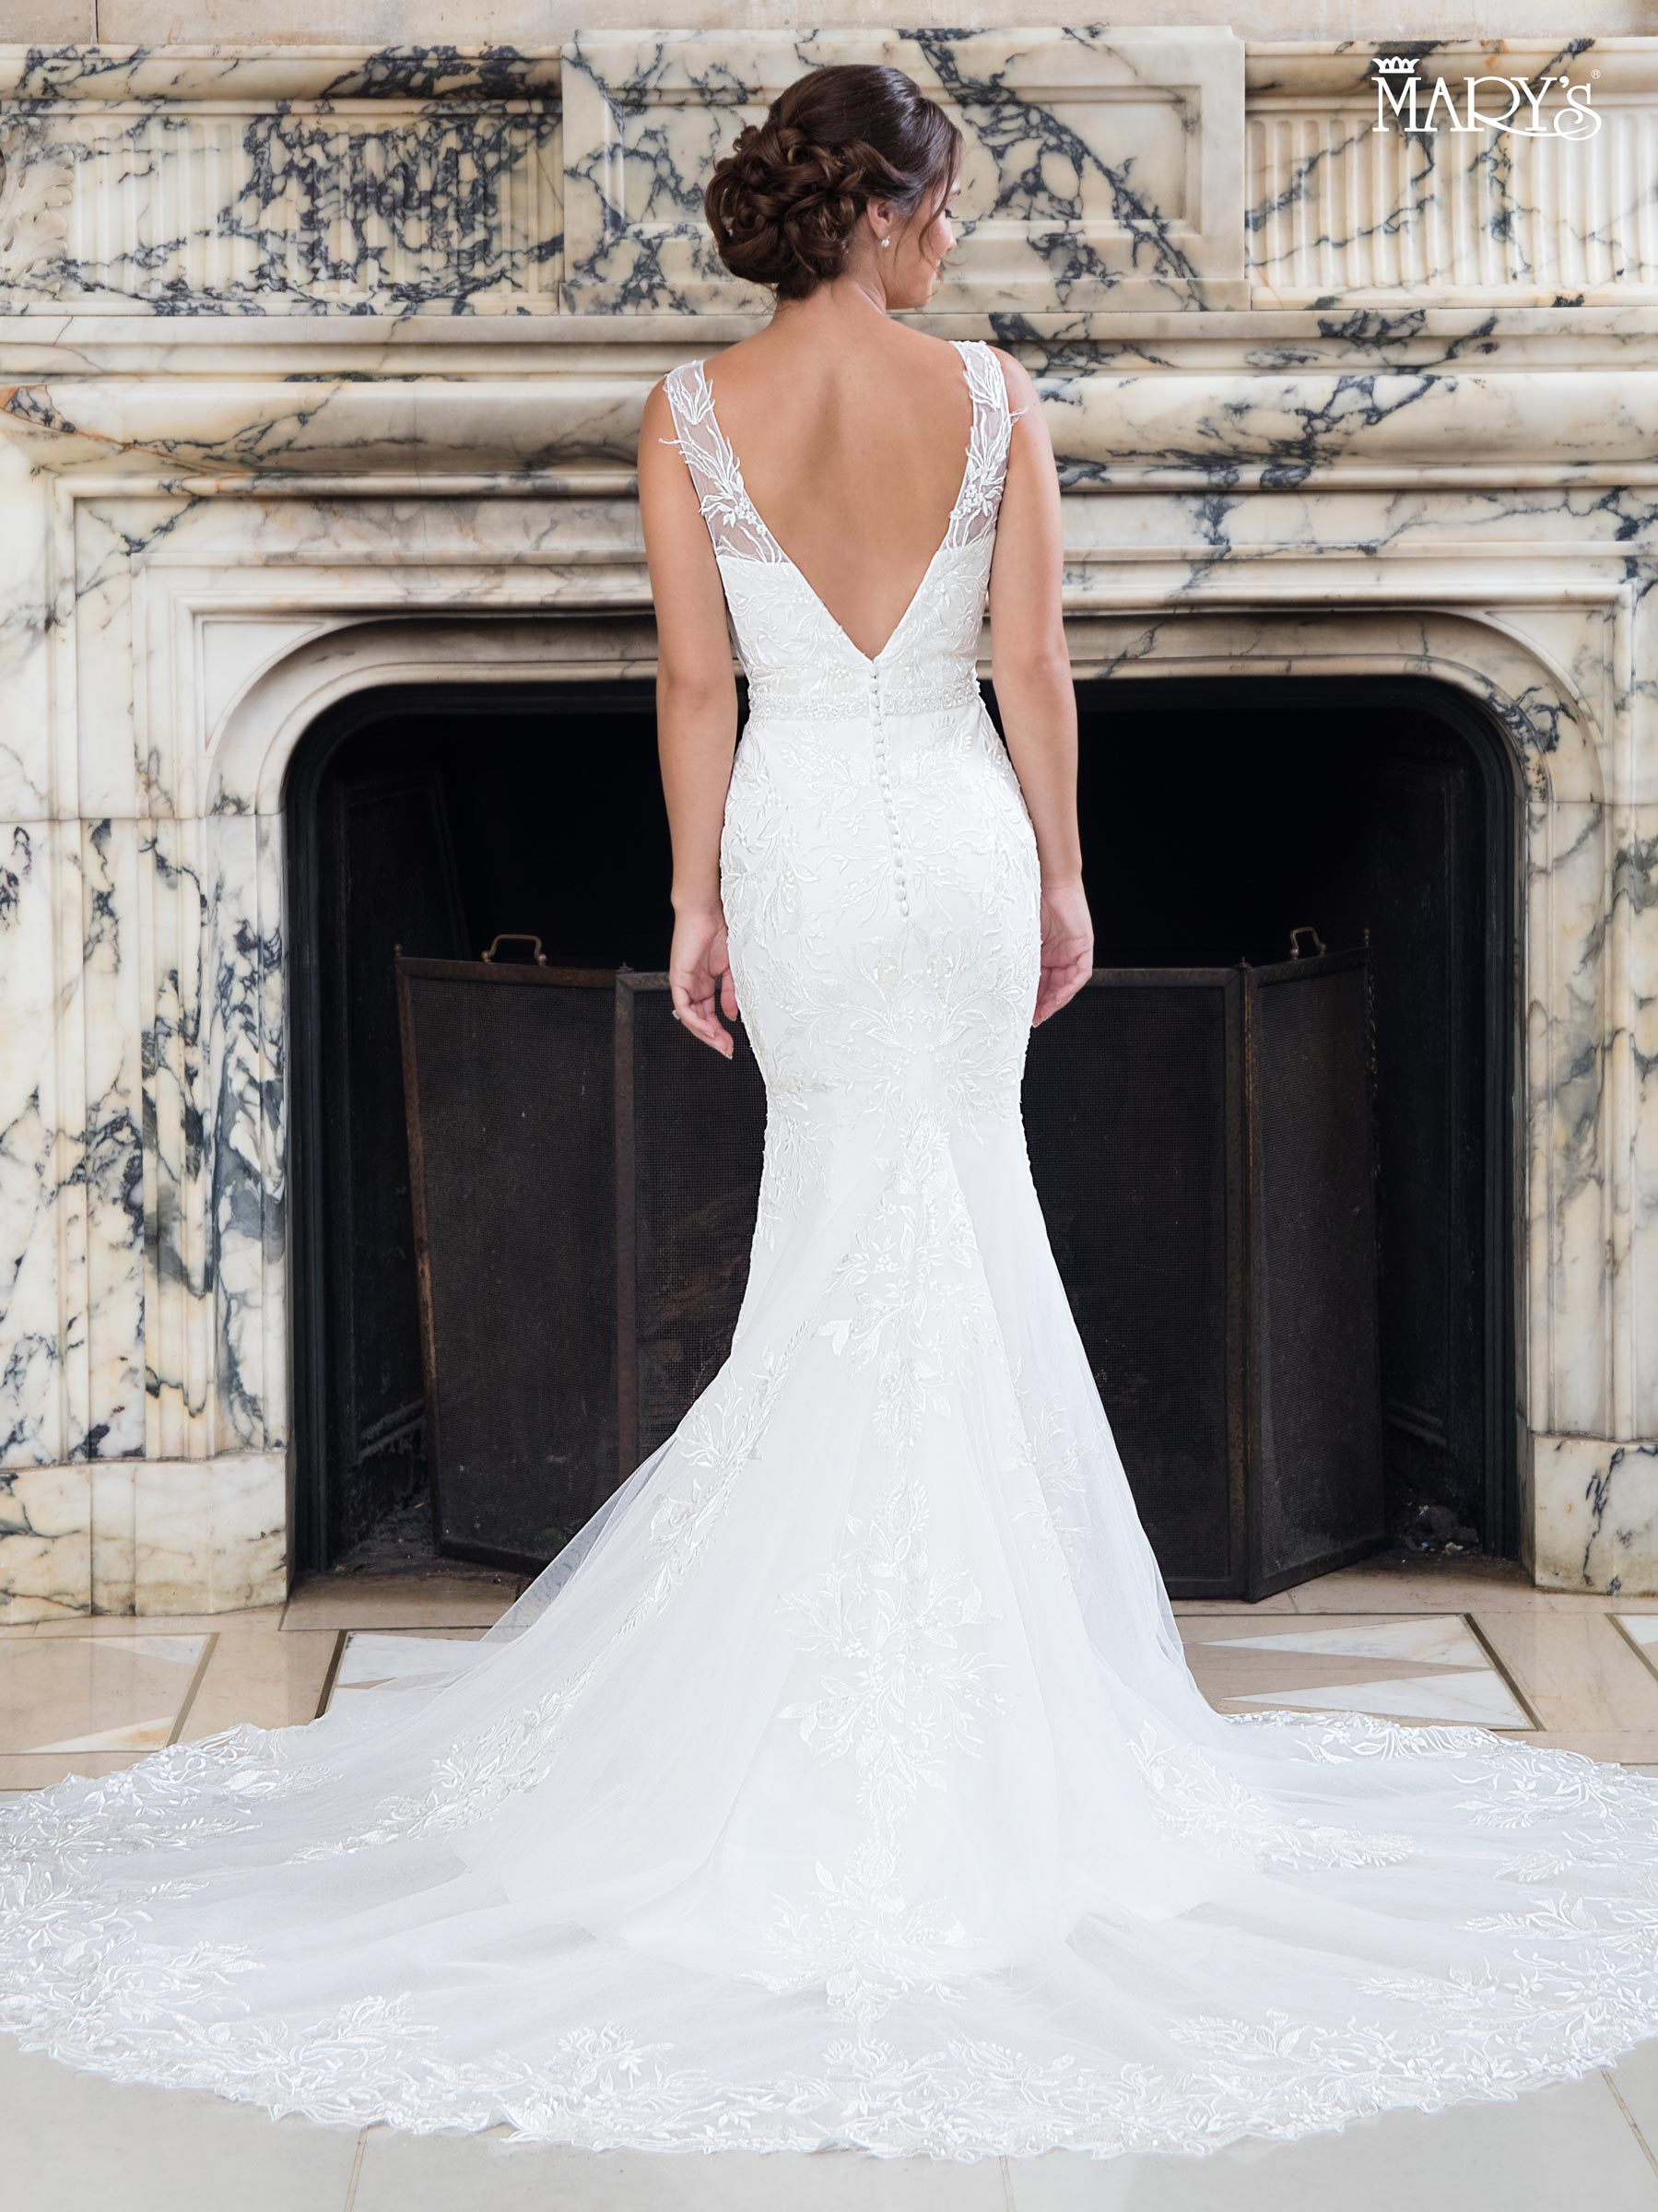 Bridal Wedding Dresses | Mary's | Style - MB3017